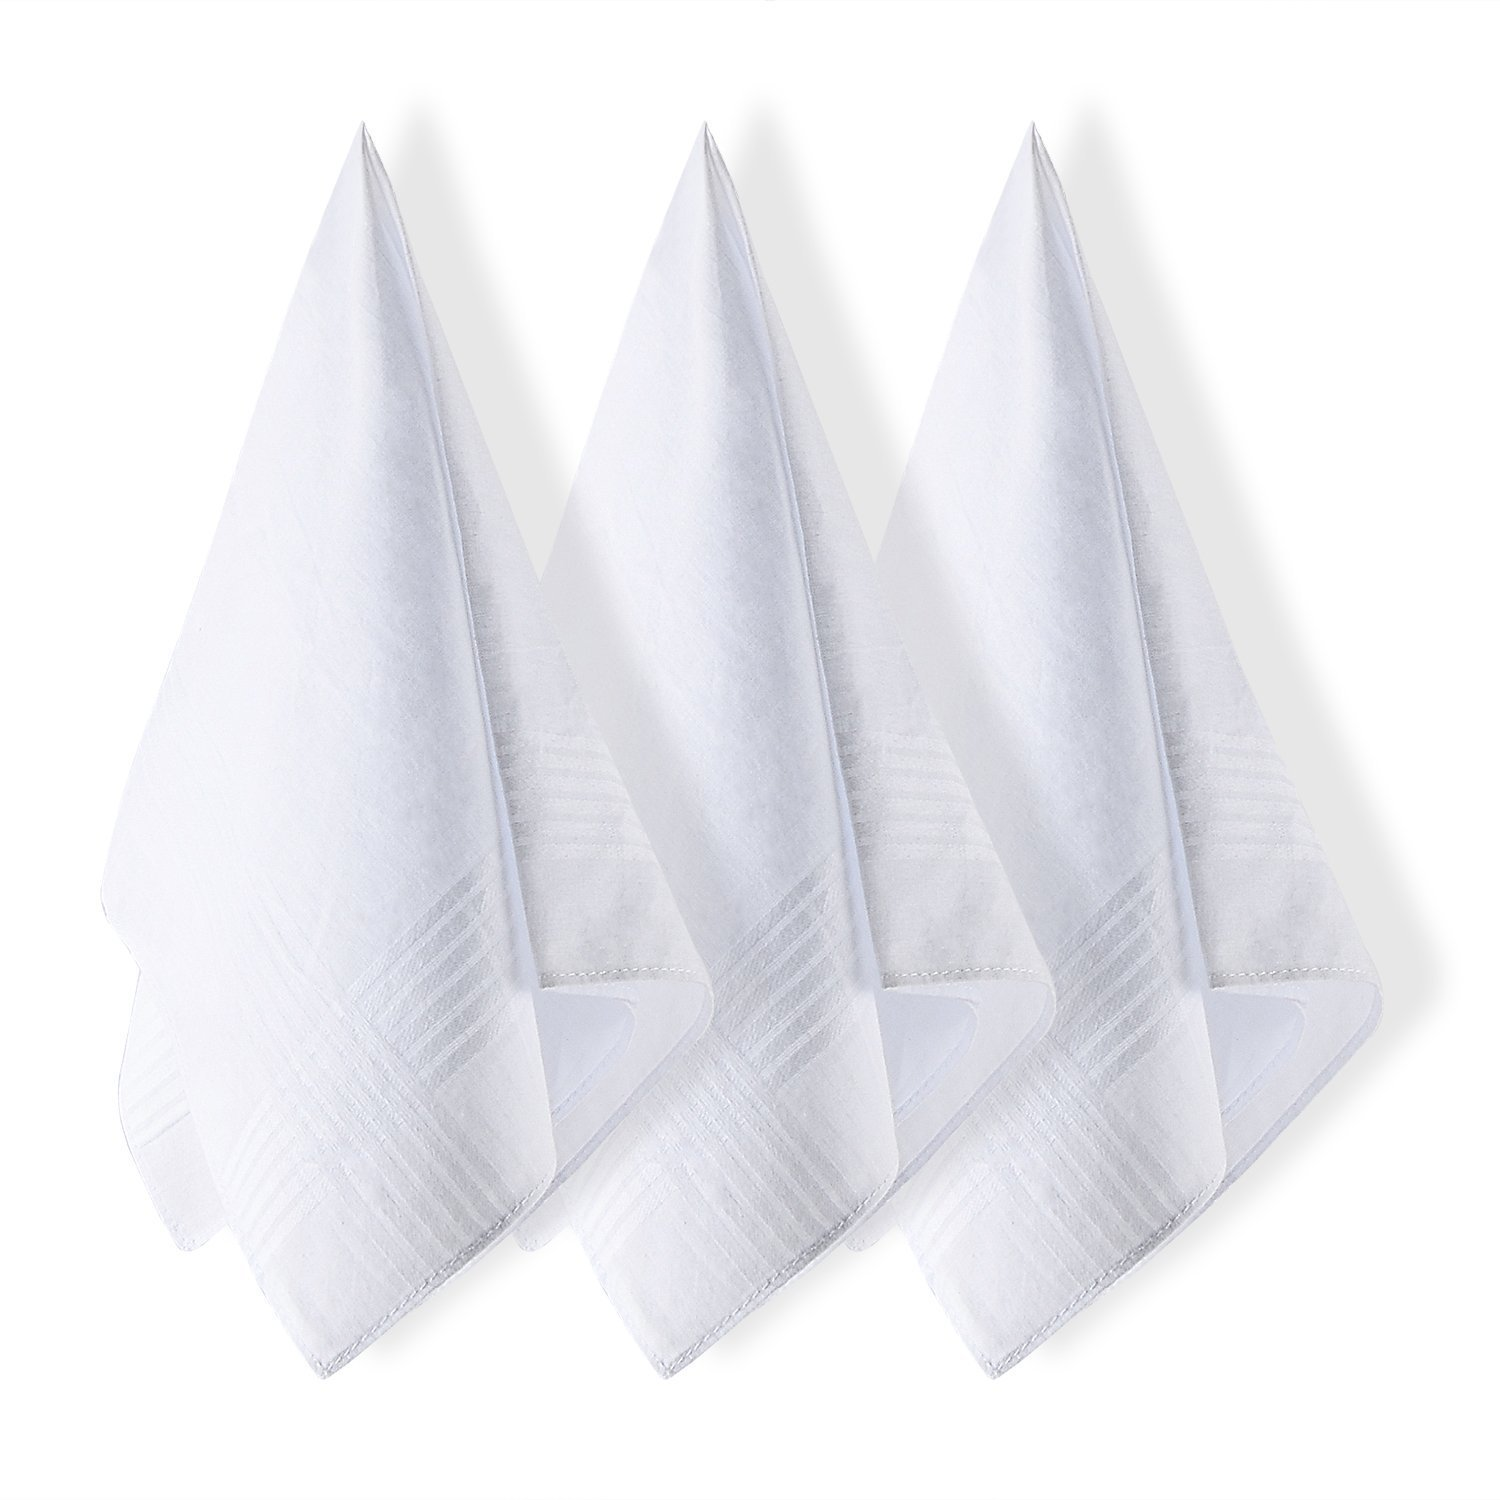 Selected Hanky Mens Handkerchiefs 100/% Cotton White with Stripe 6 Pack Hankies